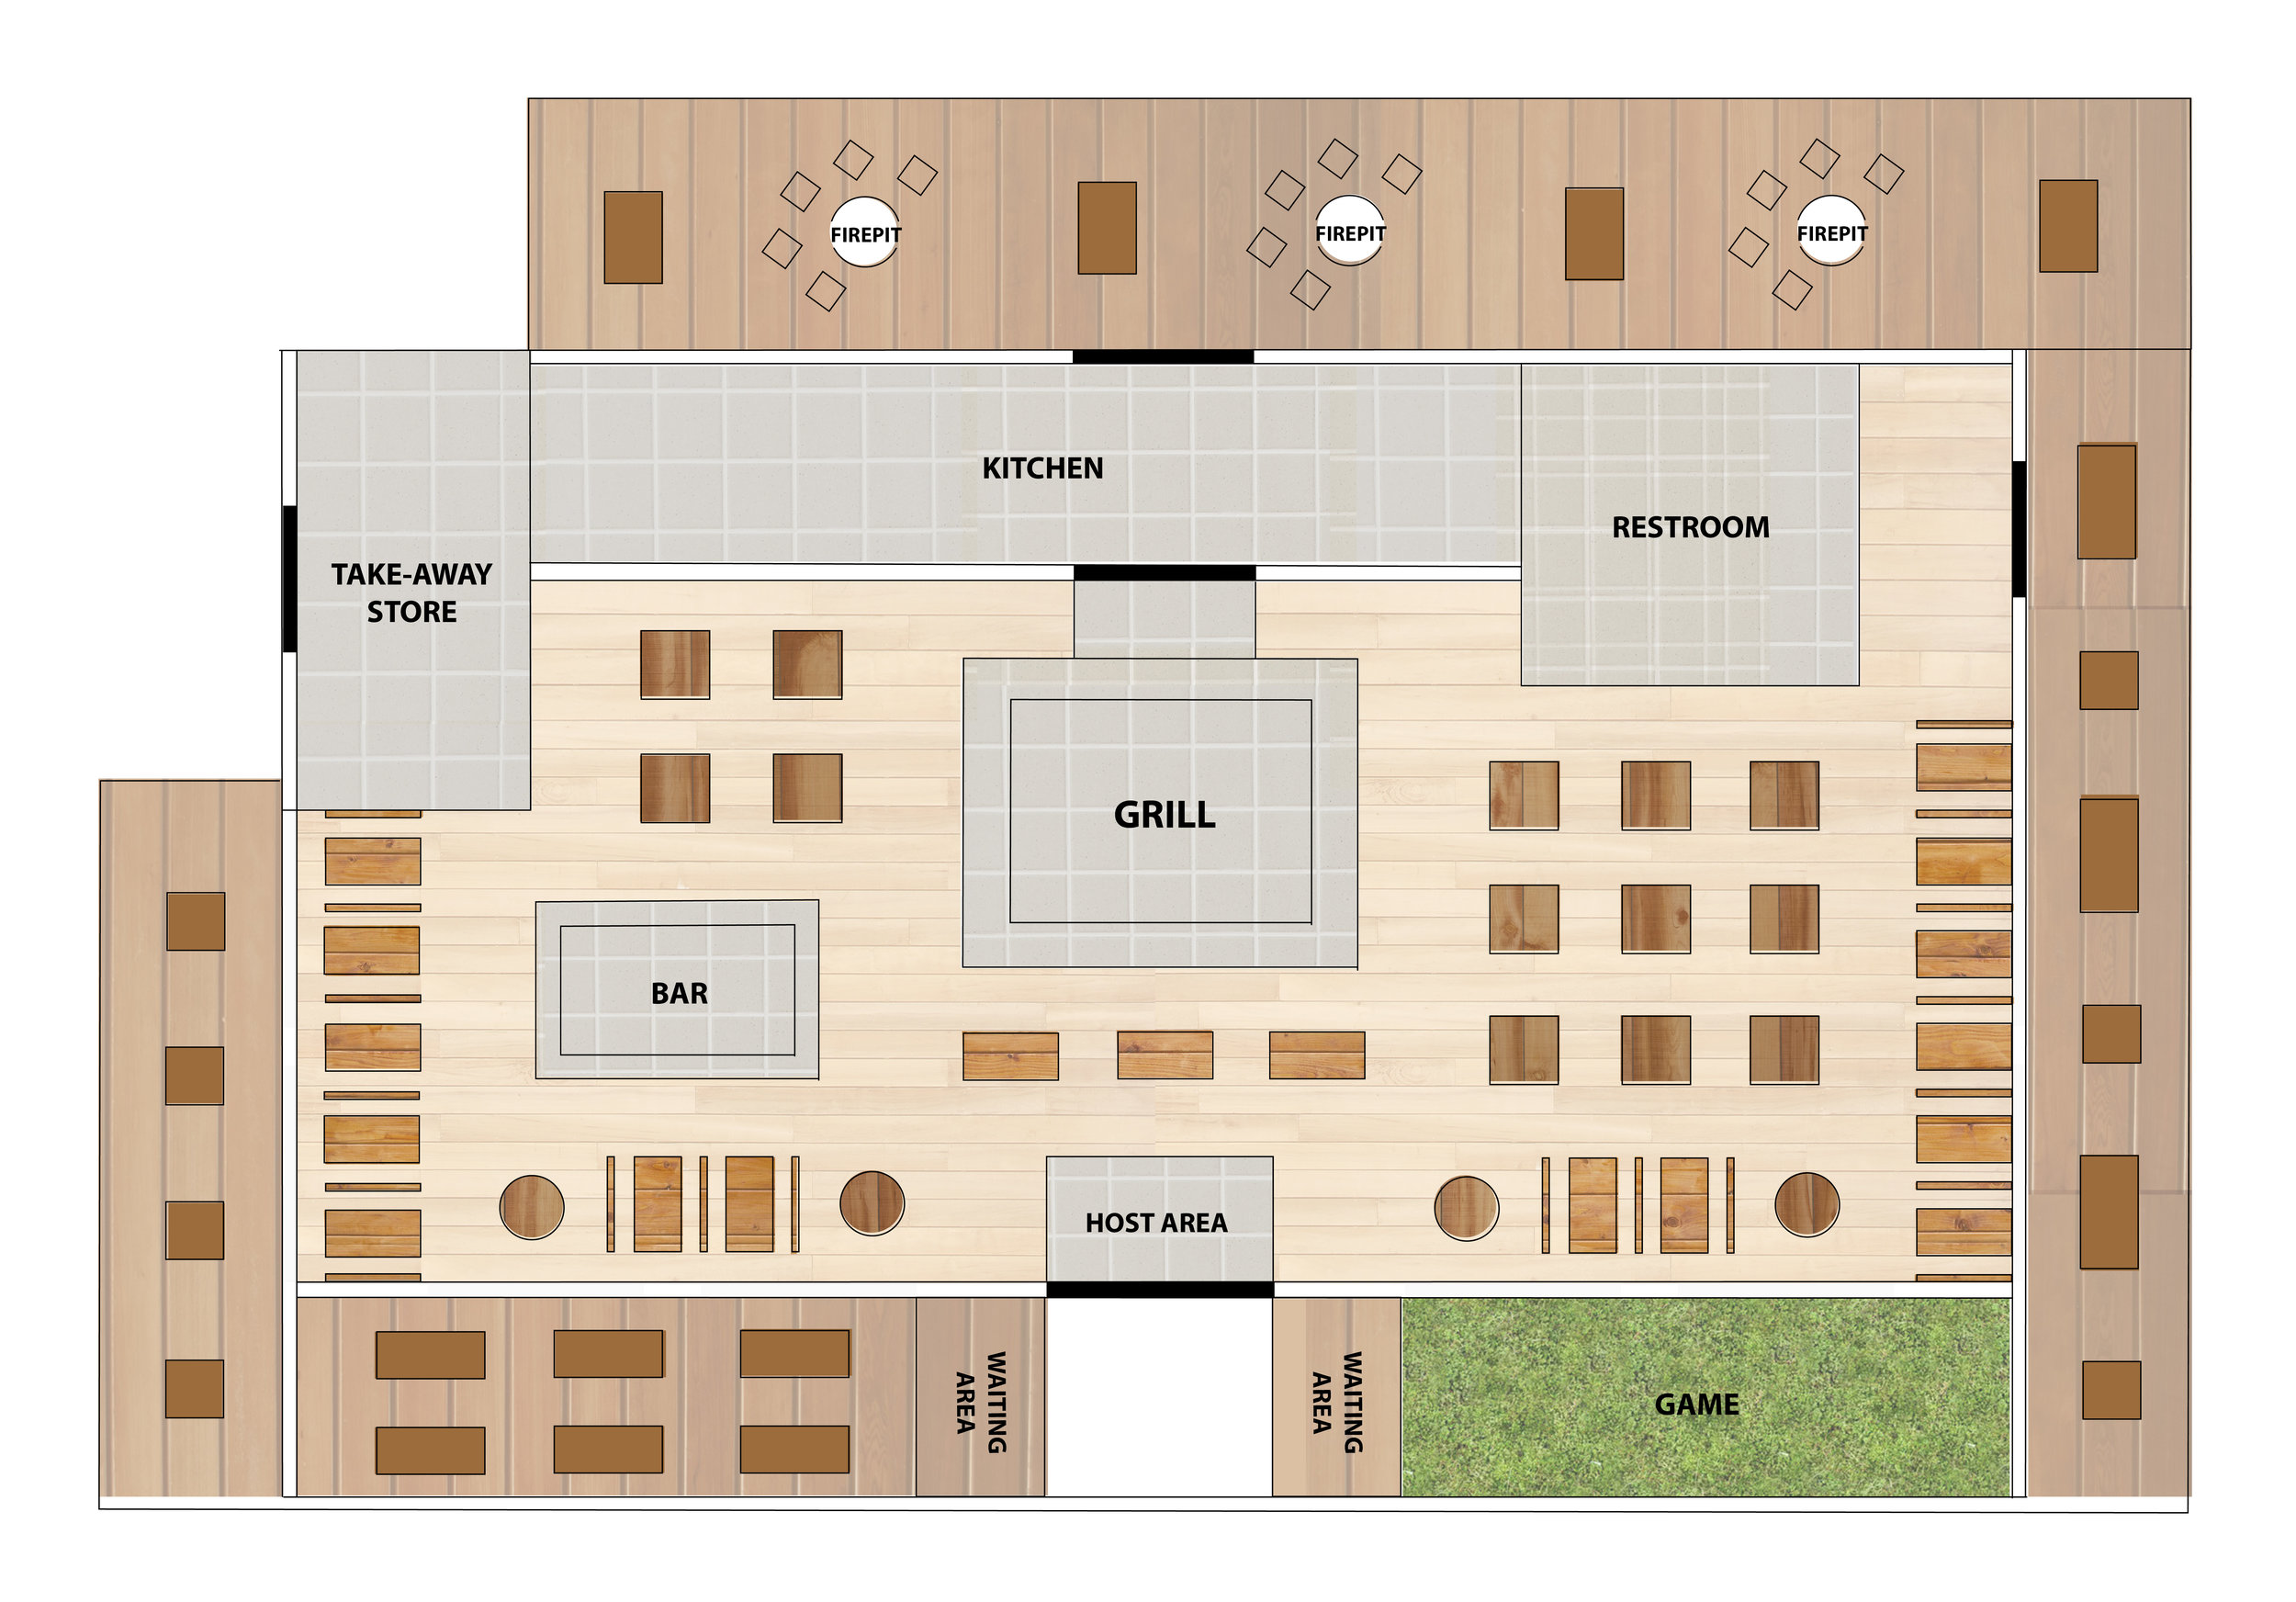 New store layout with emphasis on the communal grill, lawn games for waiting and outside fire-pits for relaxation.